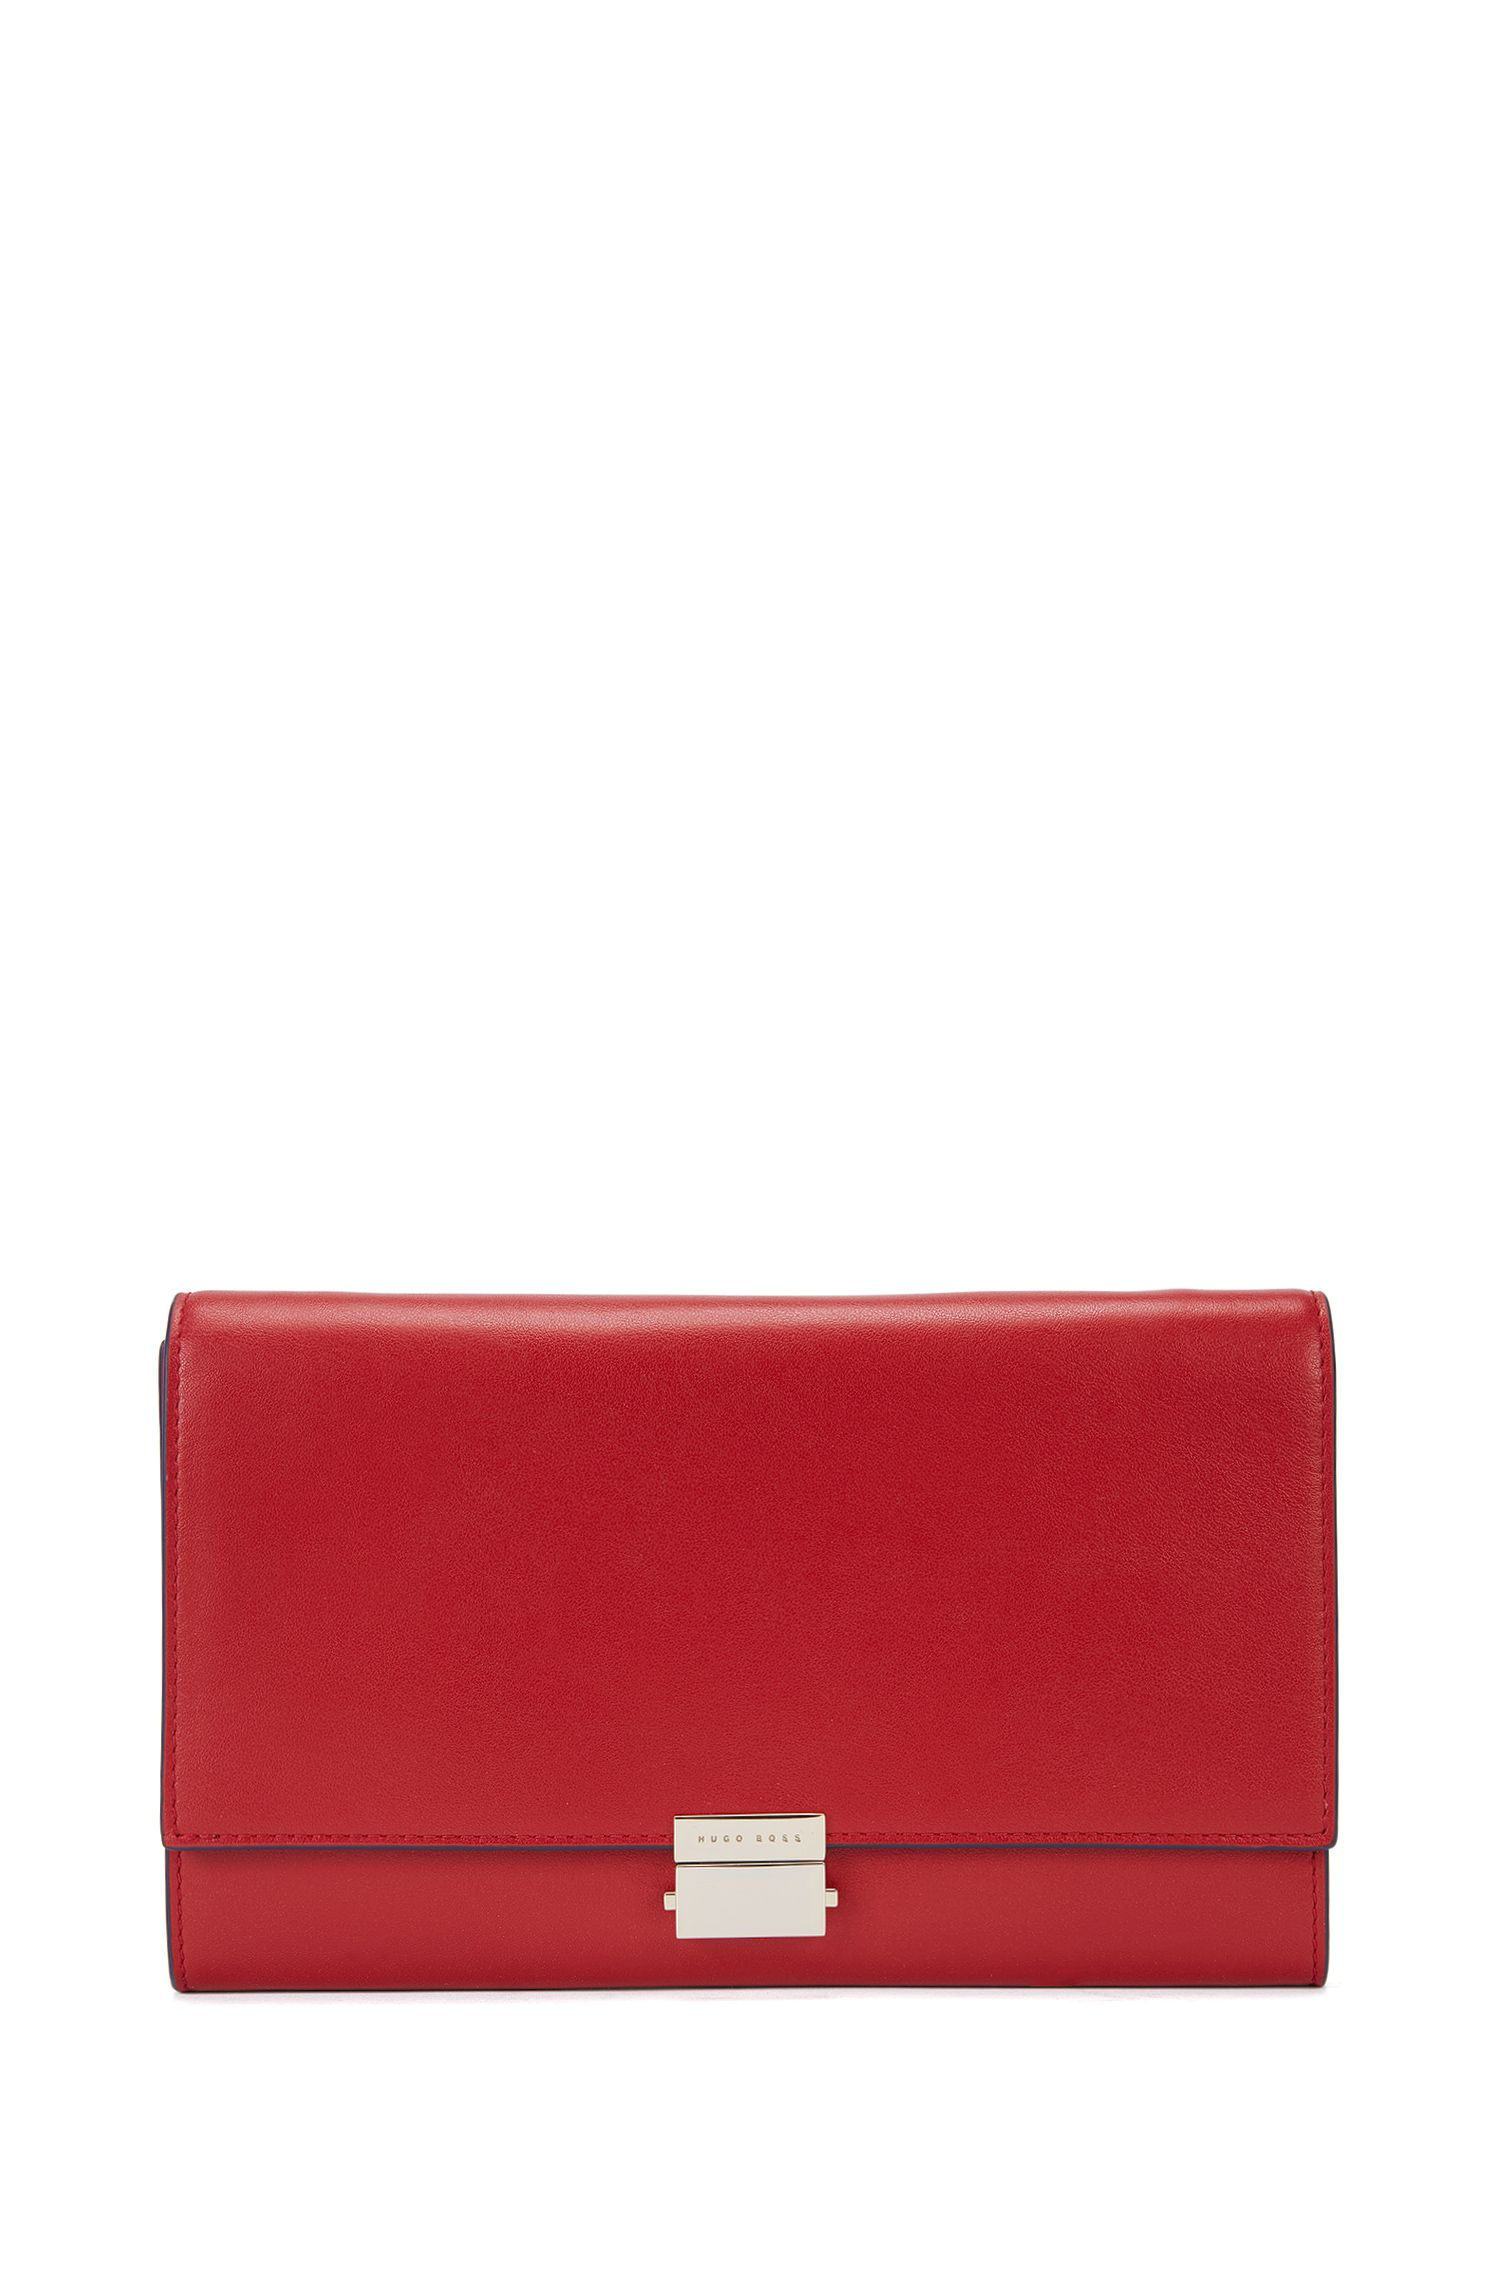 Unifarbene Clutch aus Leder mit Metallkette: 'Munich Mini-M'